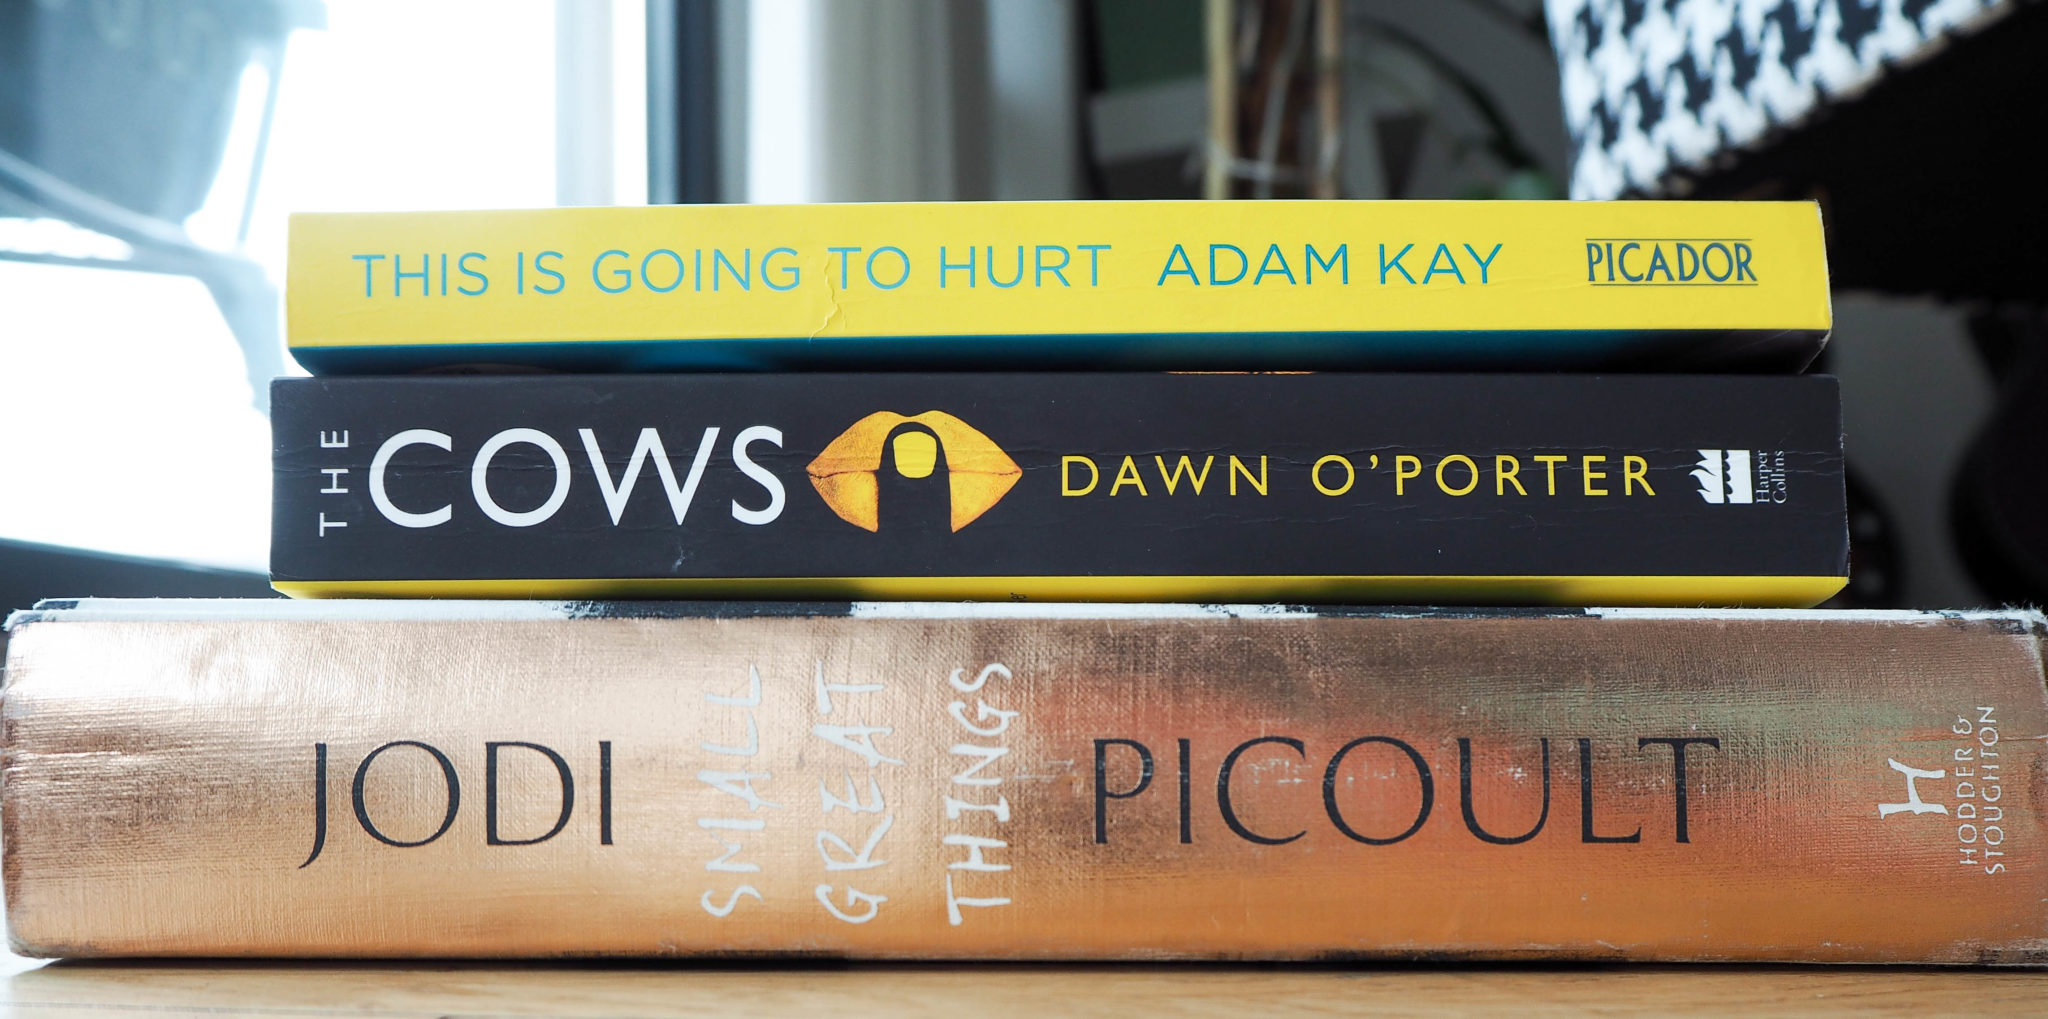 The Cows Dawn O'Porter Jodi Picoult Small Great Things This is Going to Hurt Adam Kay Lockdown Reading list